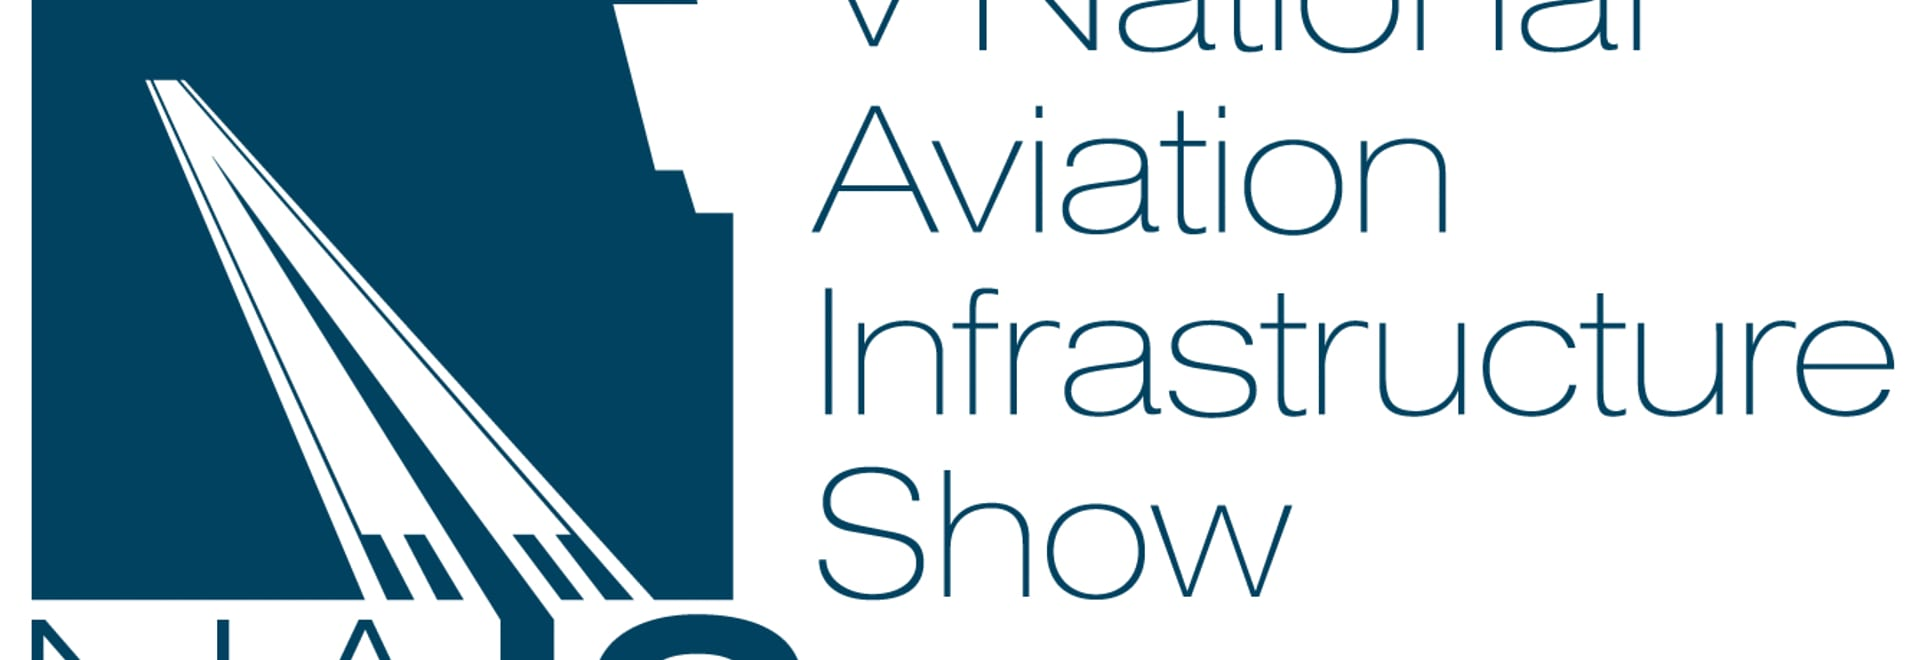 Everything for Aviation - Review of NAIS 2018